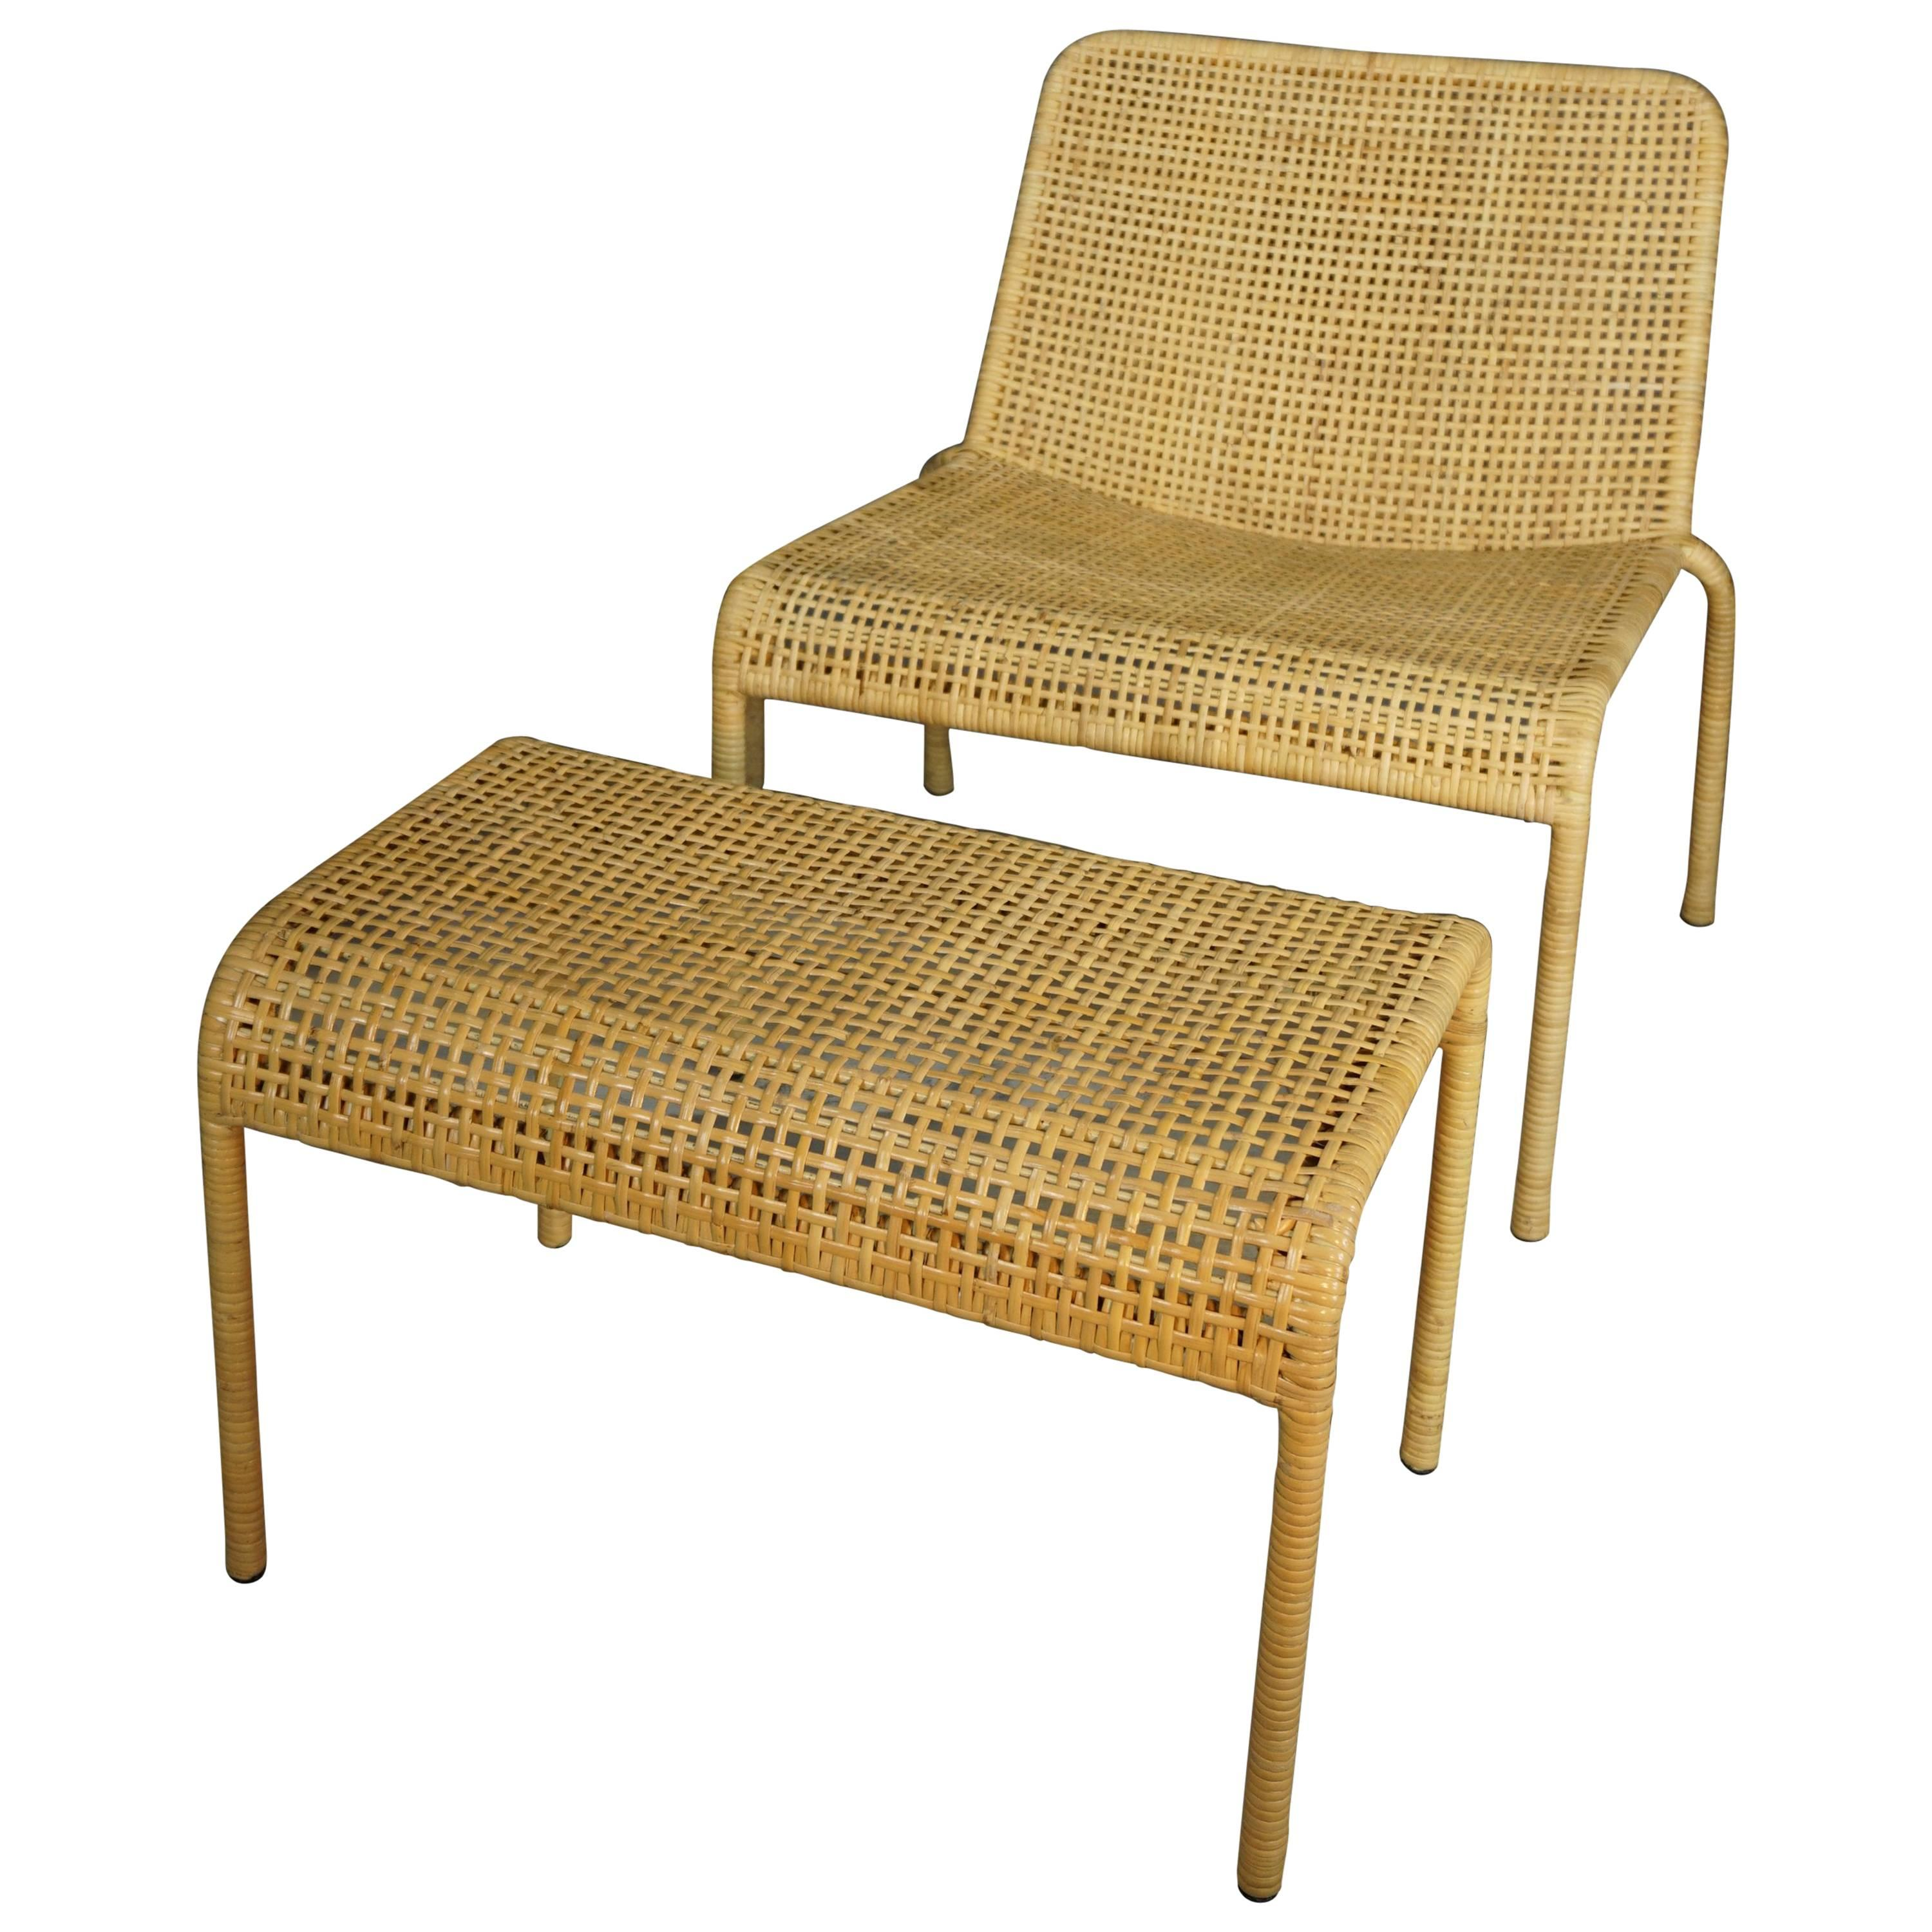 Rattan Lounge Set With Armchair And Ottoman For Sale At 1stdibs